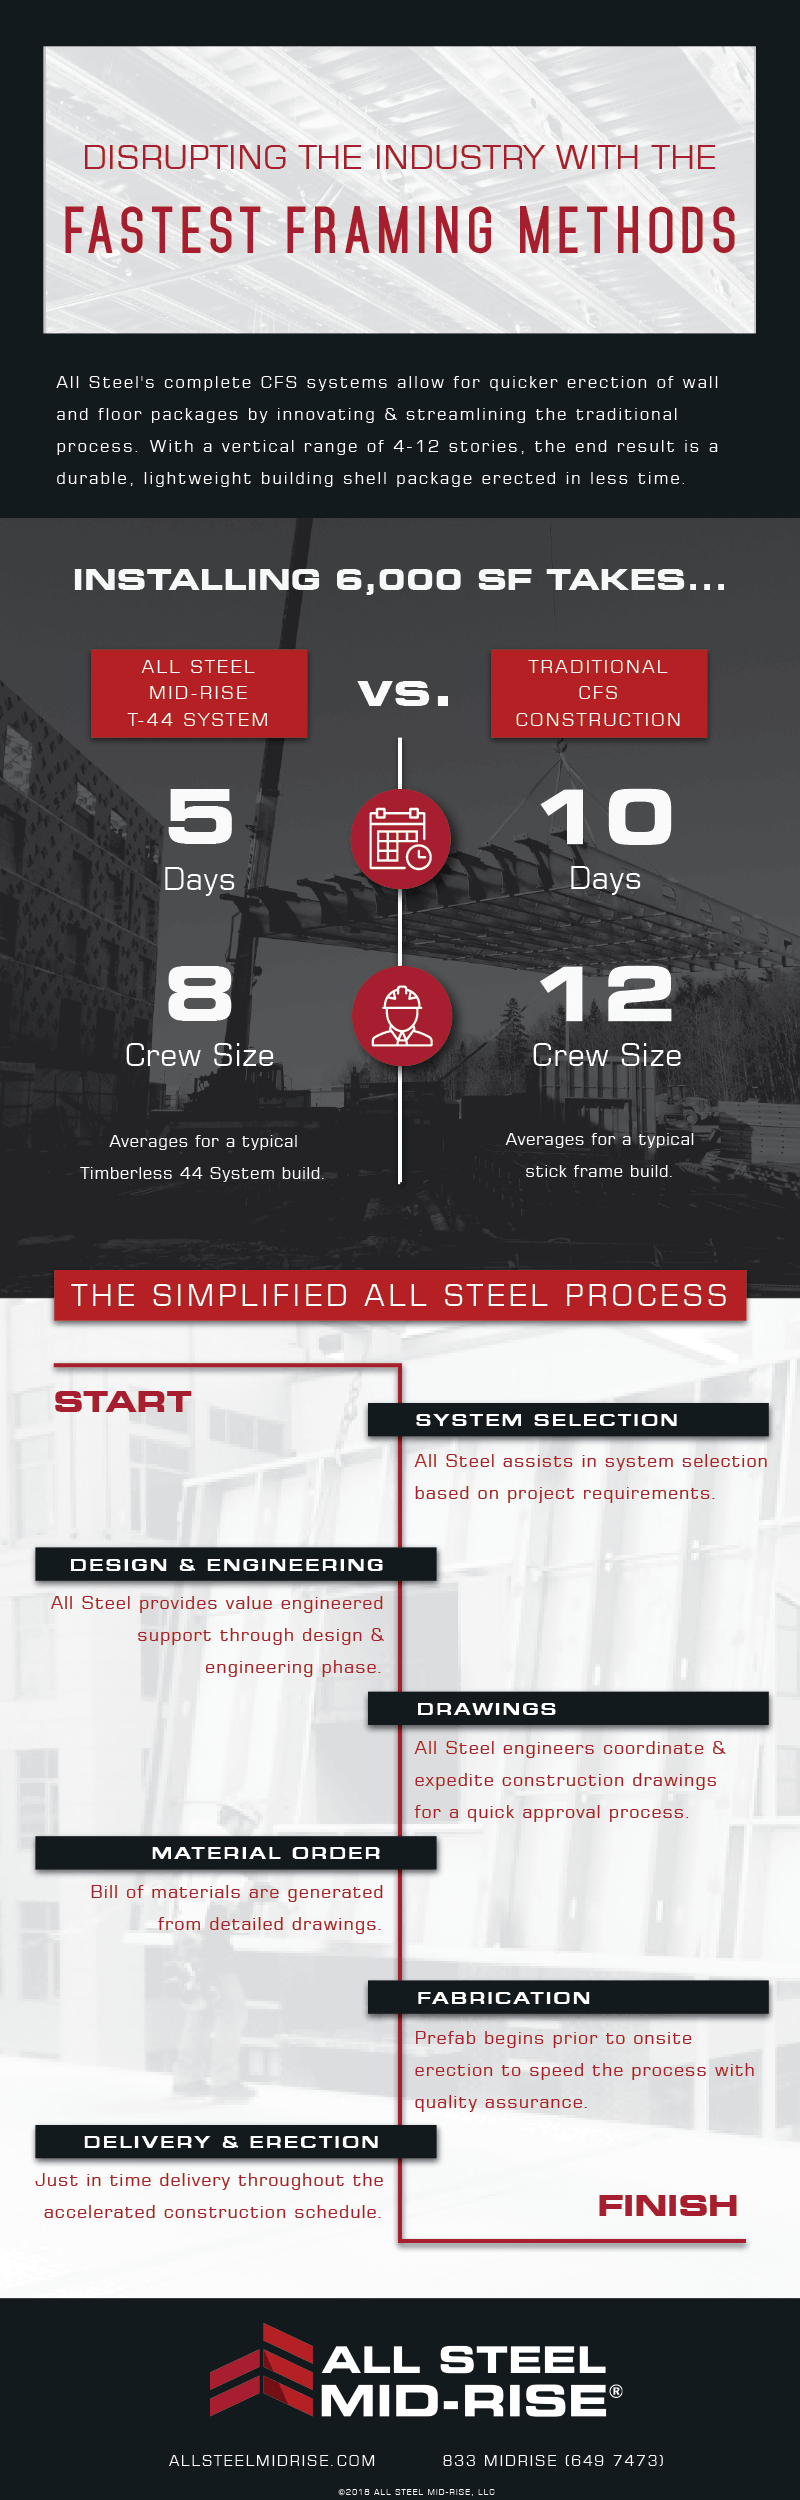 infographic detailing the cold formed steel construction process and labor savings